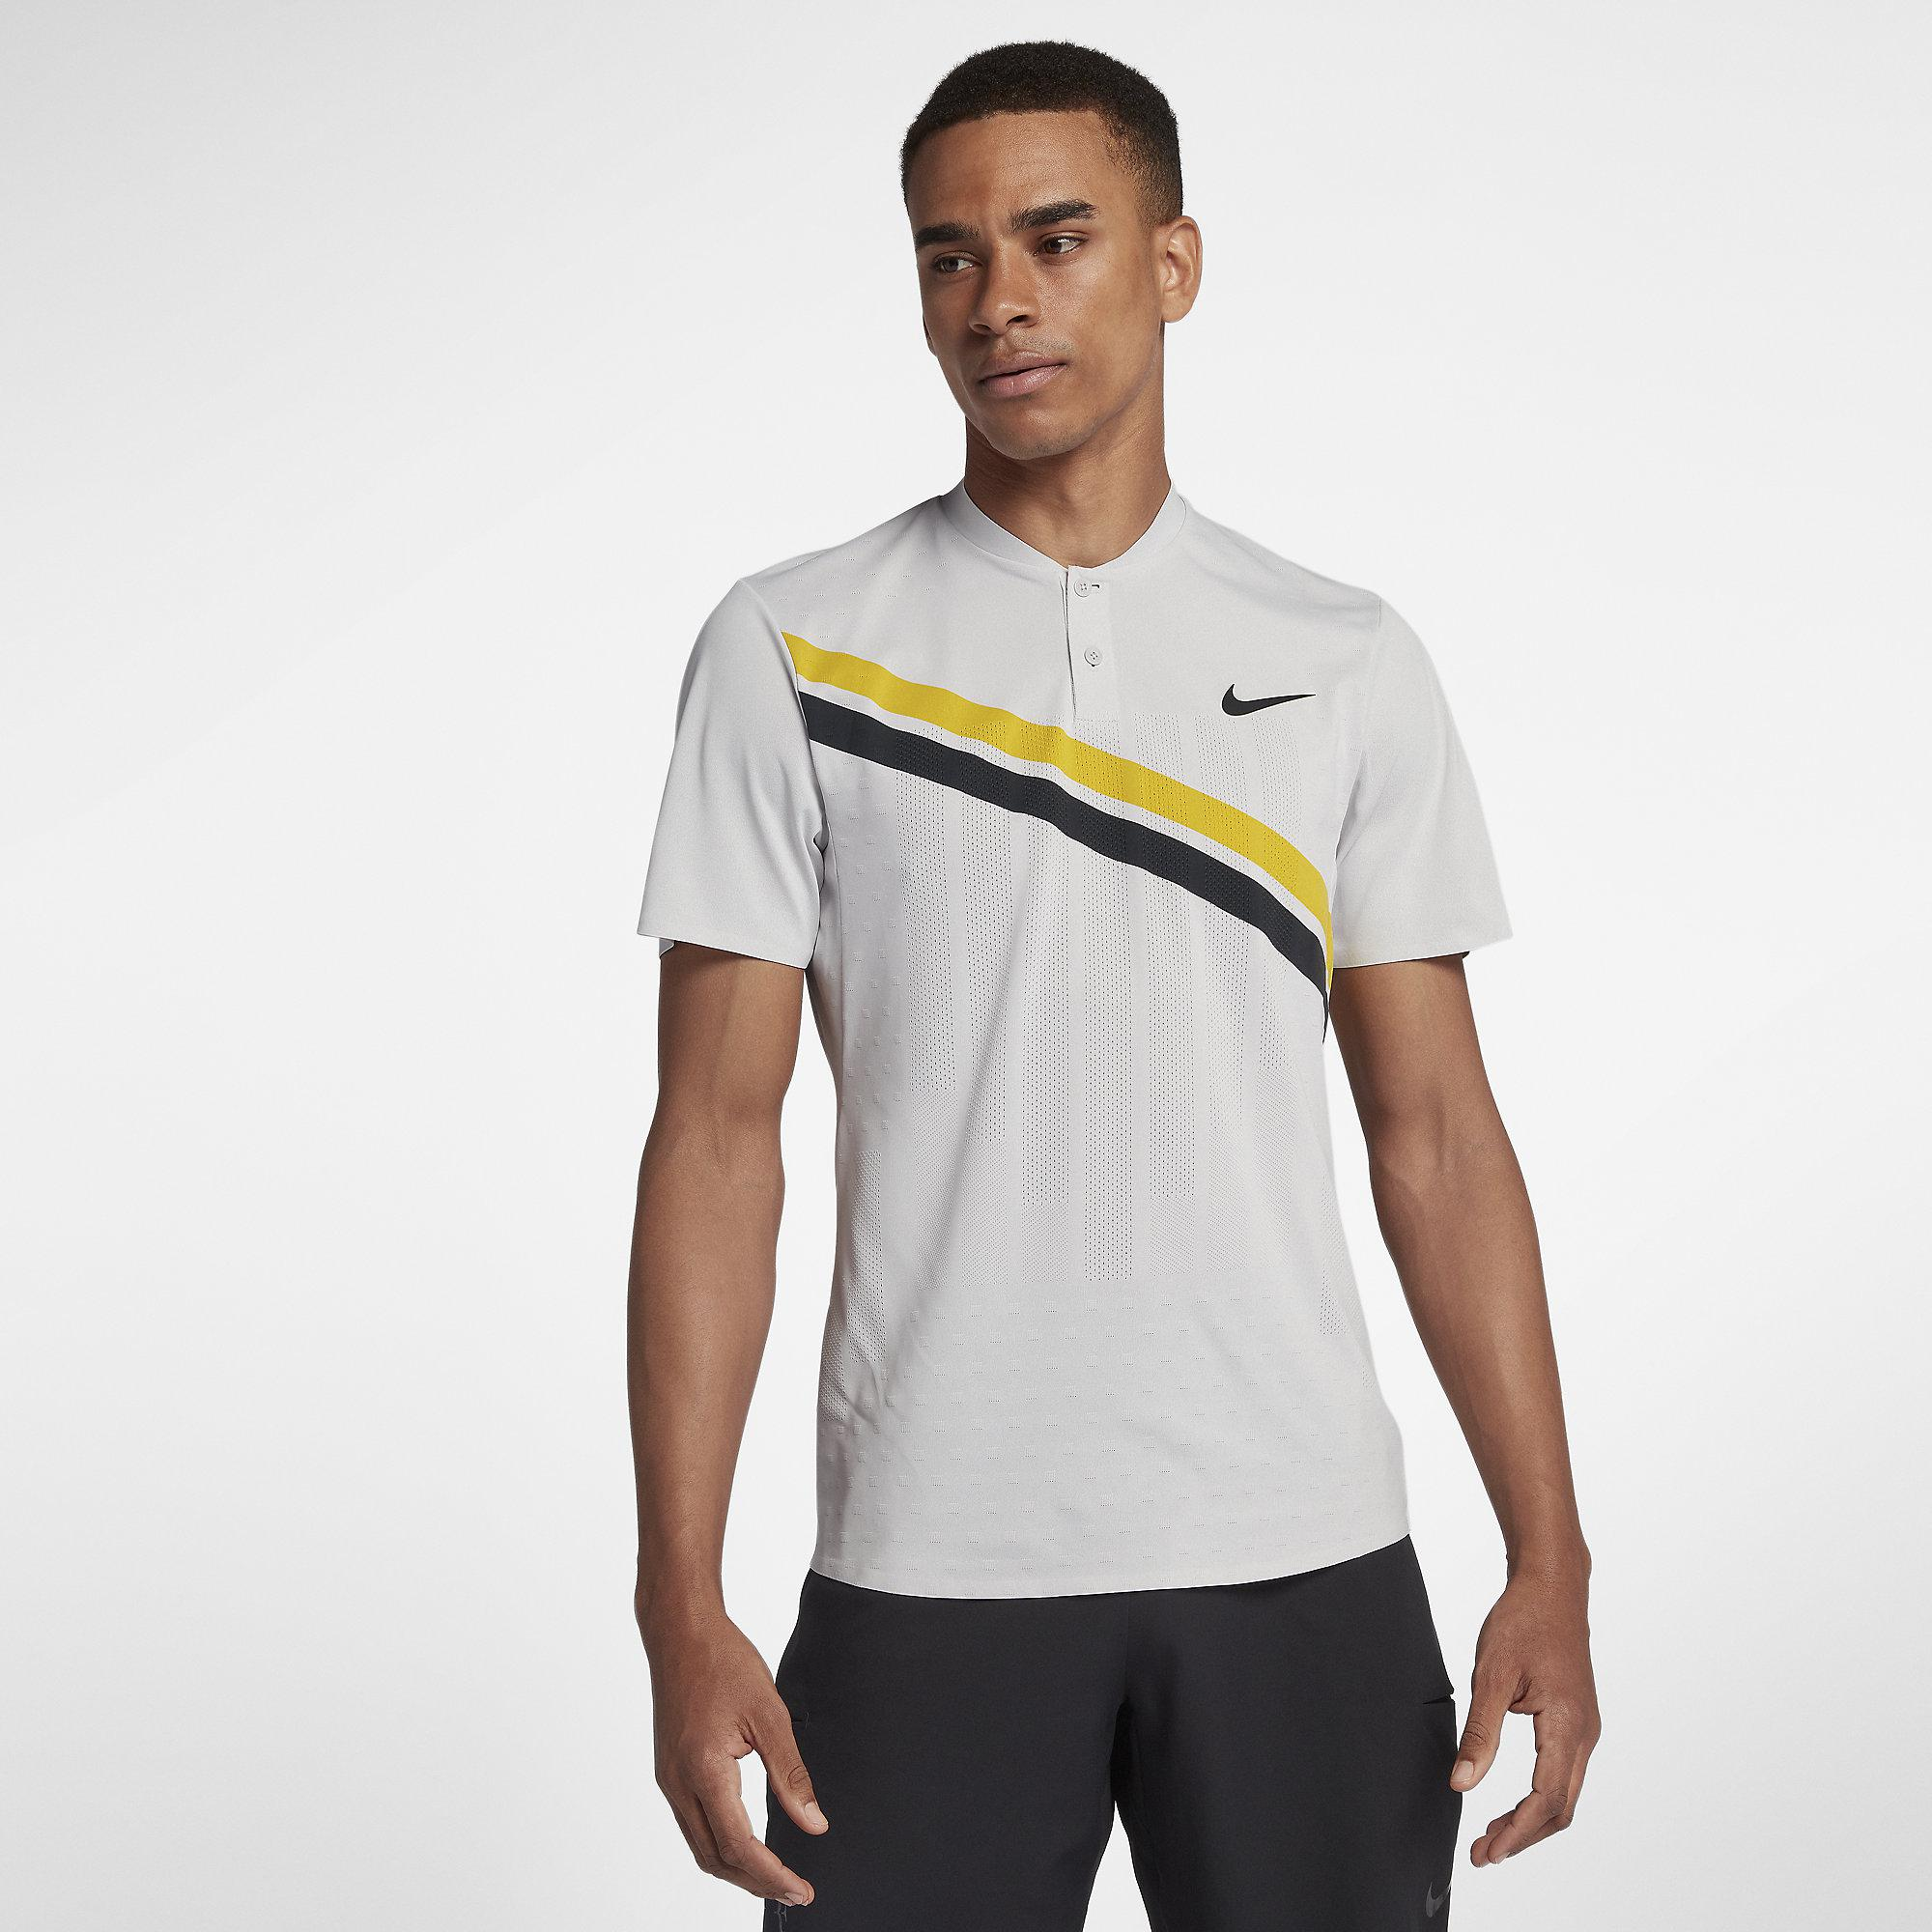 0332787b1 Nike Mens Zonal Cooling RF Advantage Top - Vast Grey/Bright Citron -  Tennisnuts.com